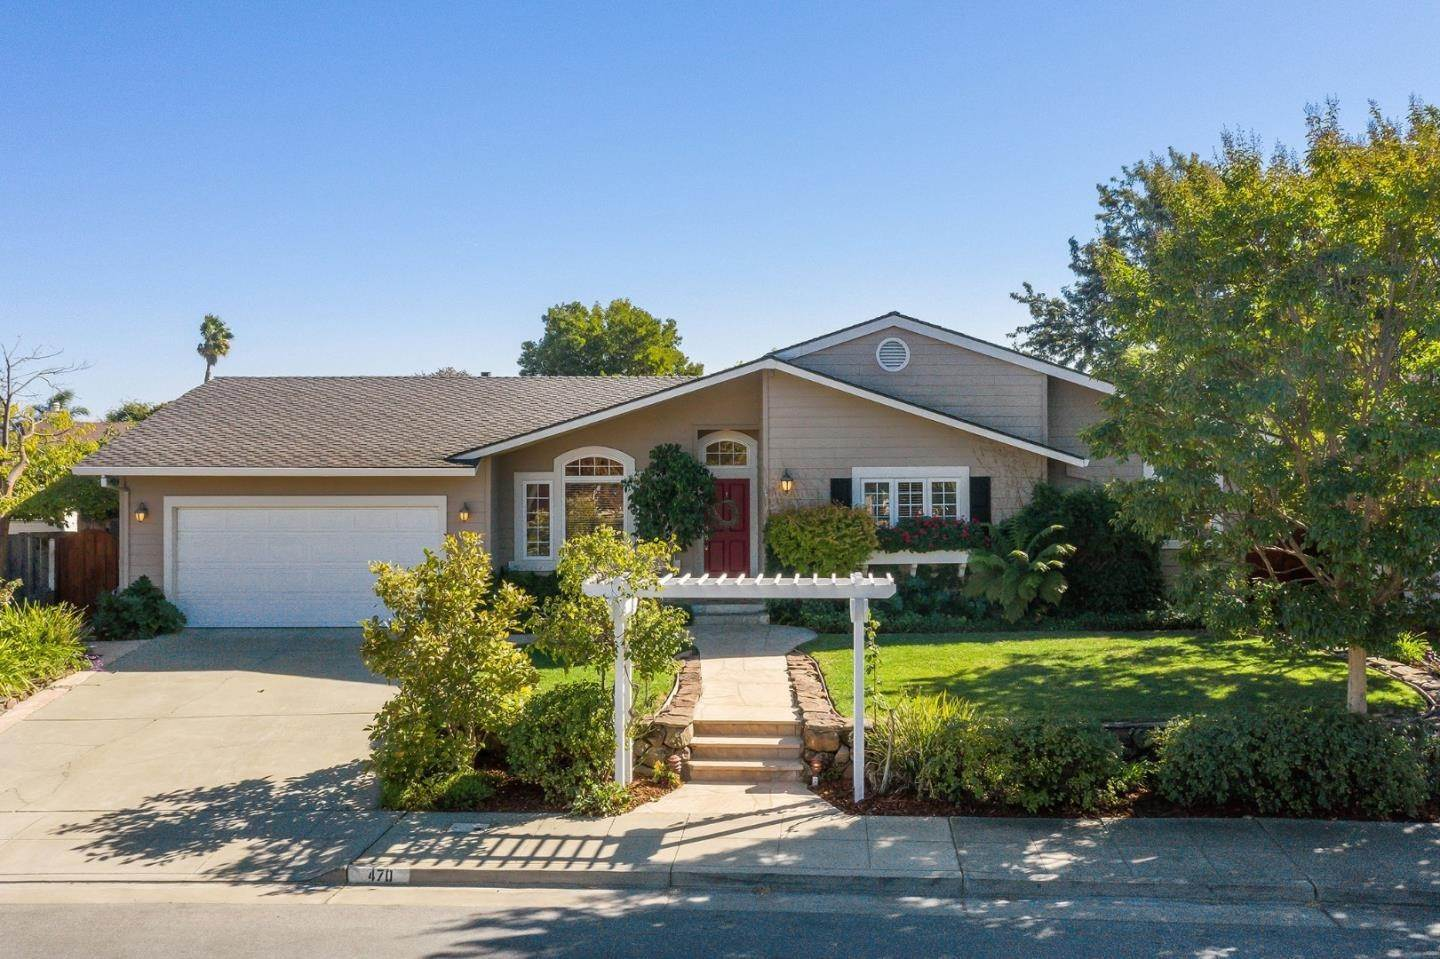 Single Family Homes for Sale at 470 Tiller Lane Redwood City, California 94065 United States